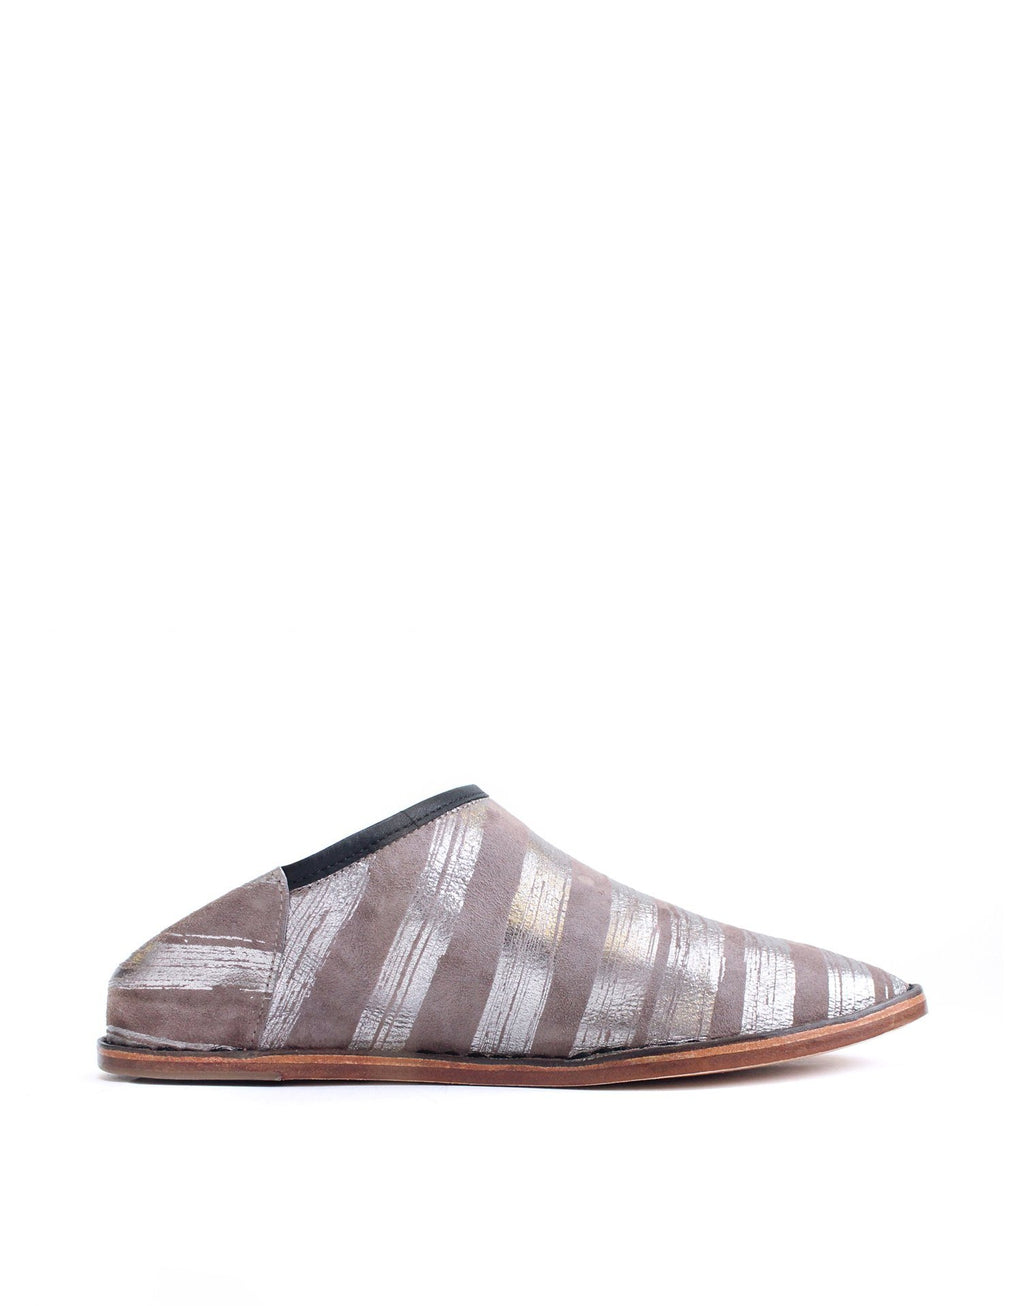 Taupe and Anthracite stripe slip on with a hidden wedge and padded insole for comfort. An stylish shoe for indoor and out by London designer Georgina Goodman. Each pair unique.